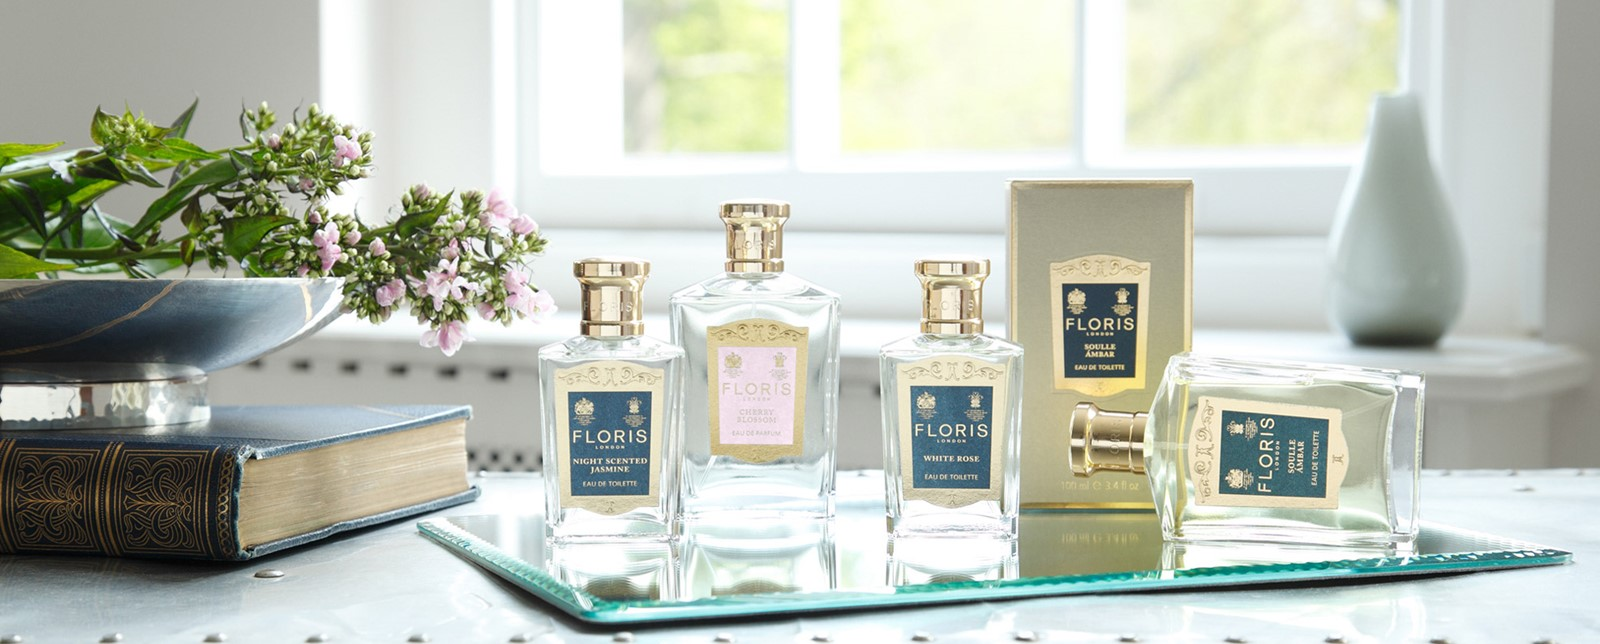 A variety of Floris fragrances on a table